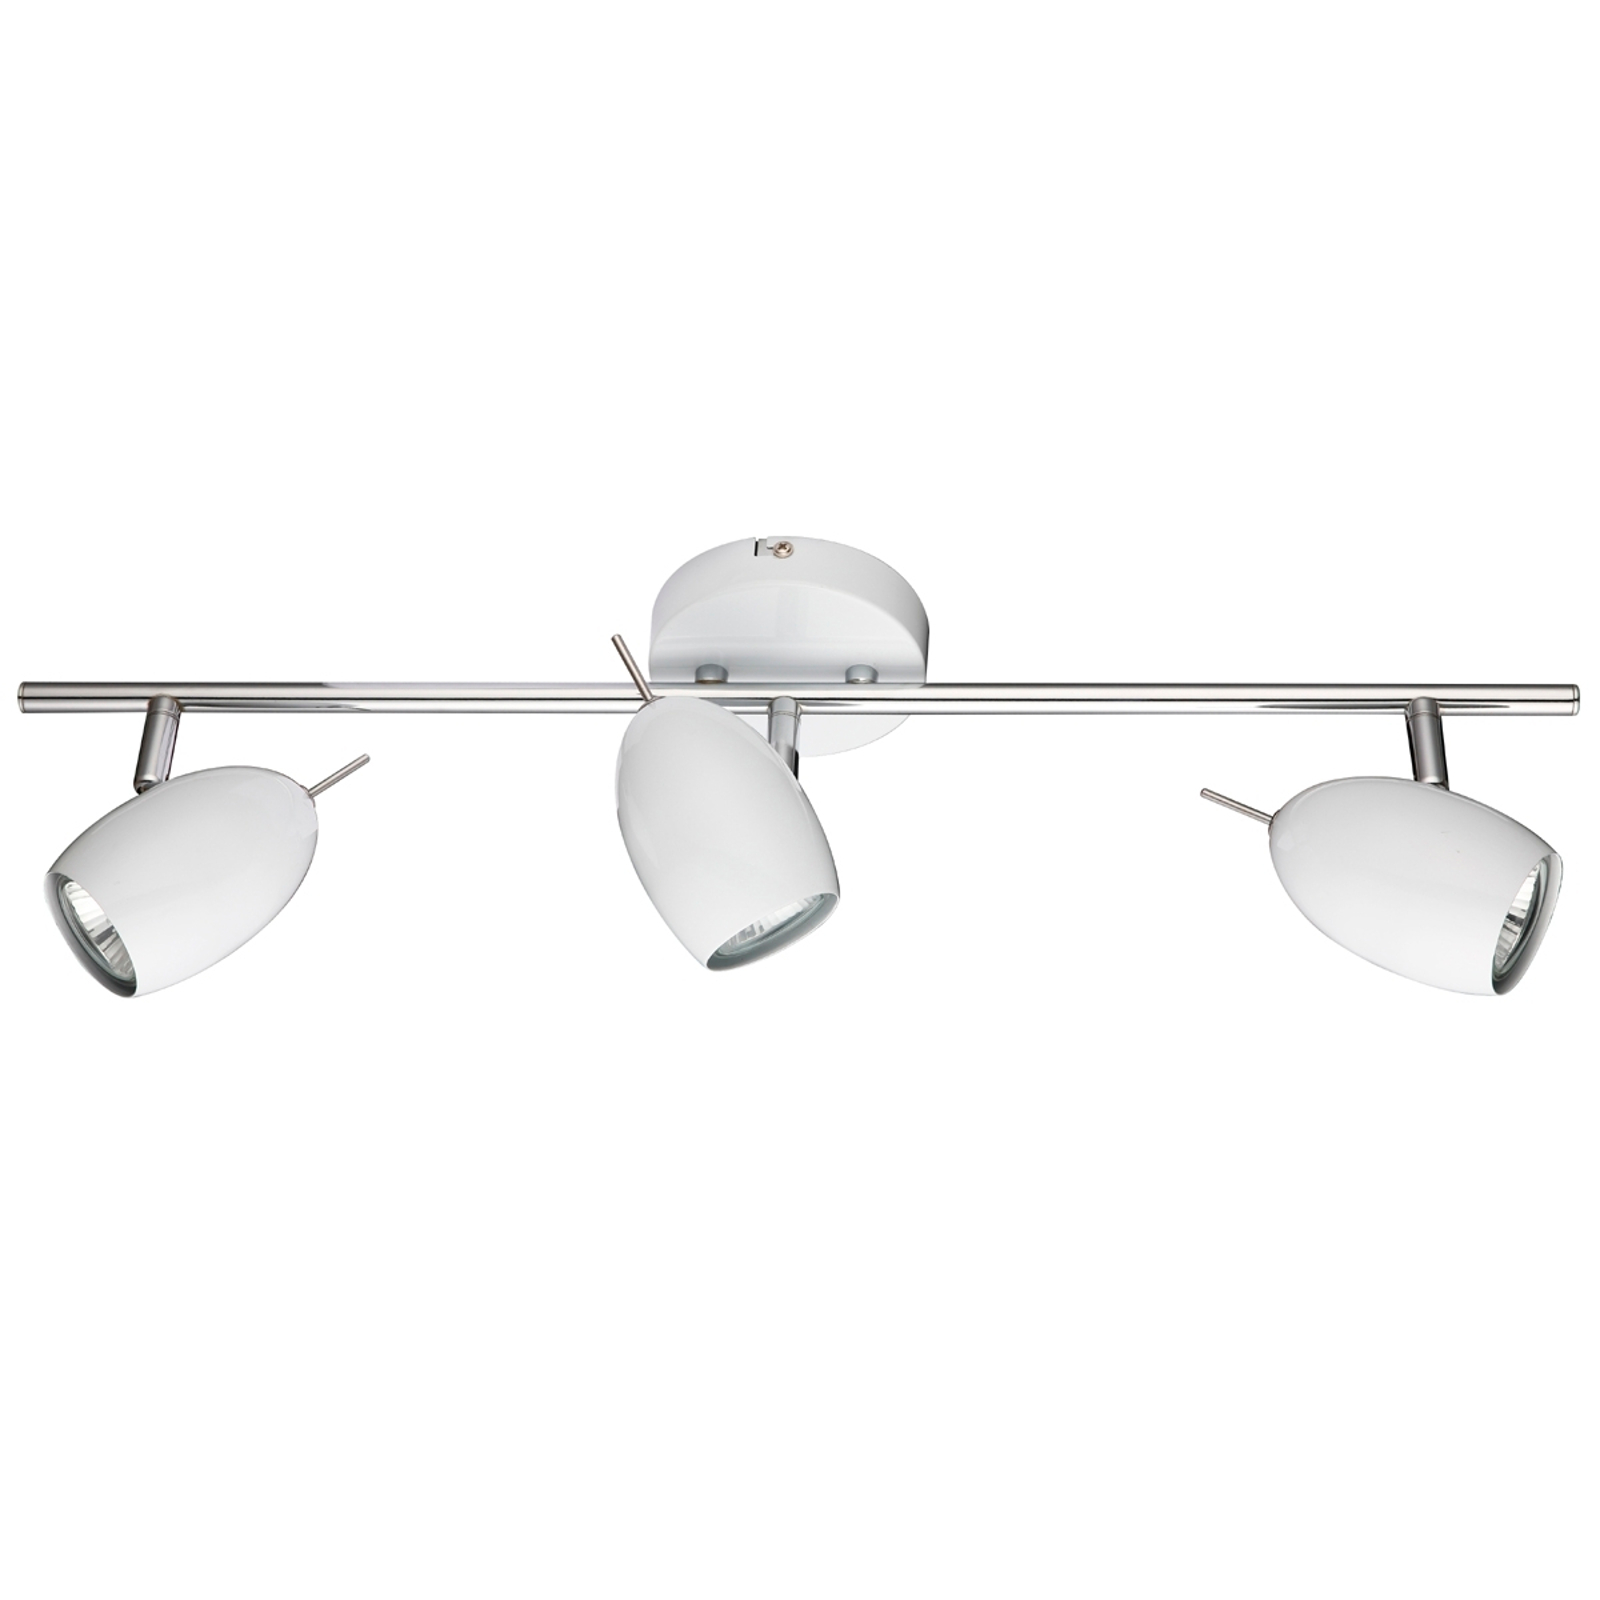 Geniale LED-plafondlamp QUINCHY, 3-lichts, wit